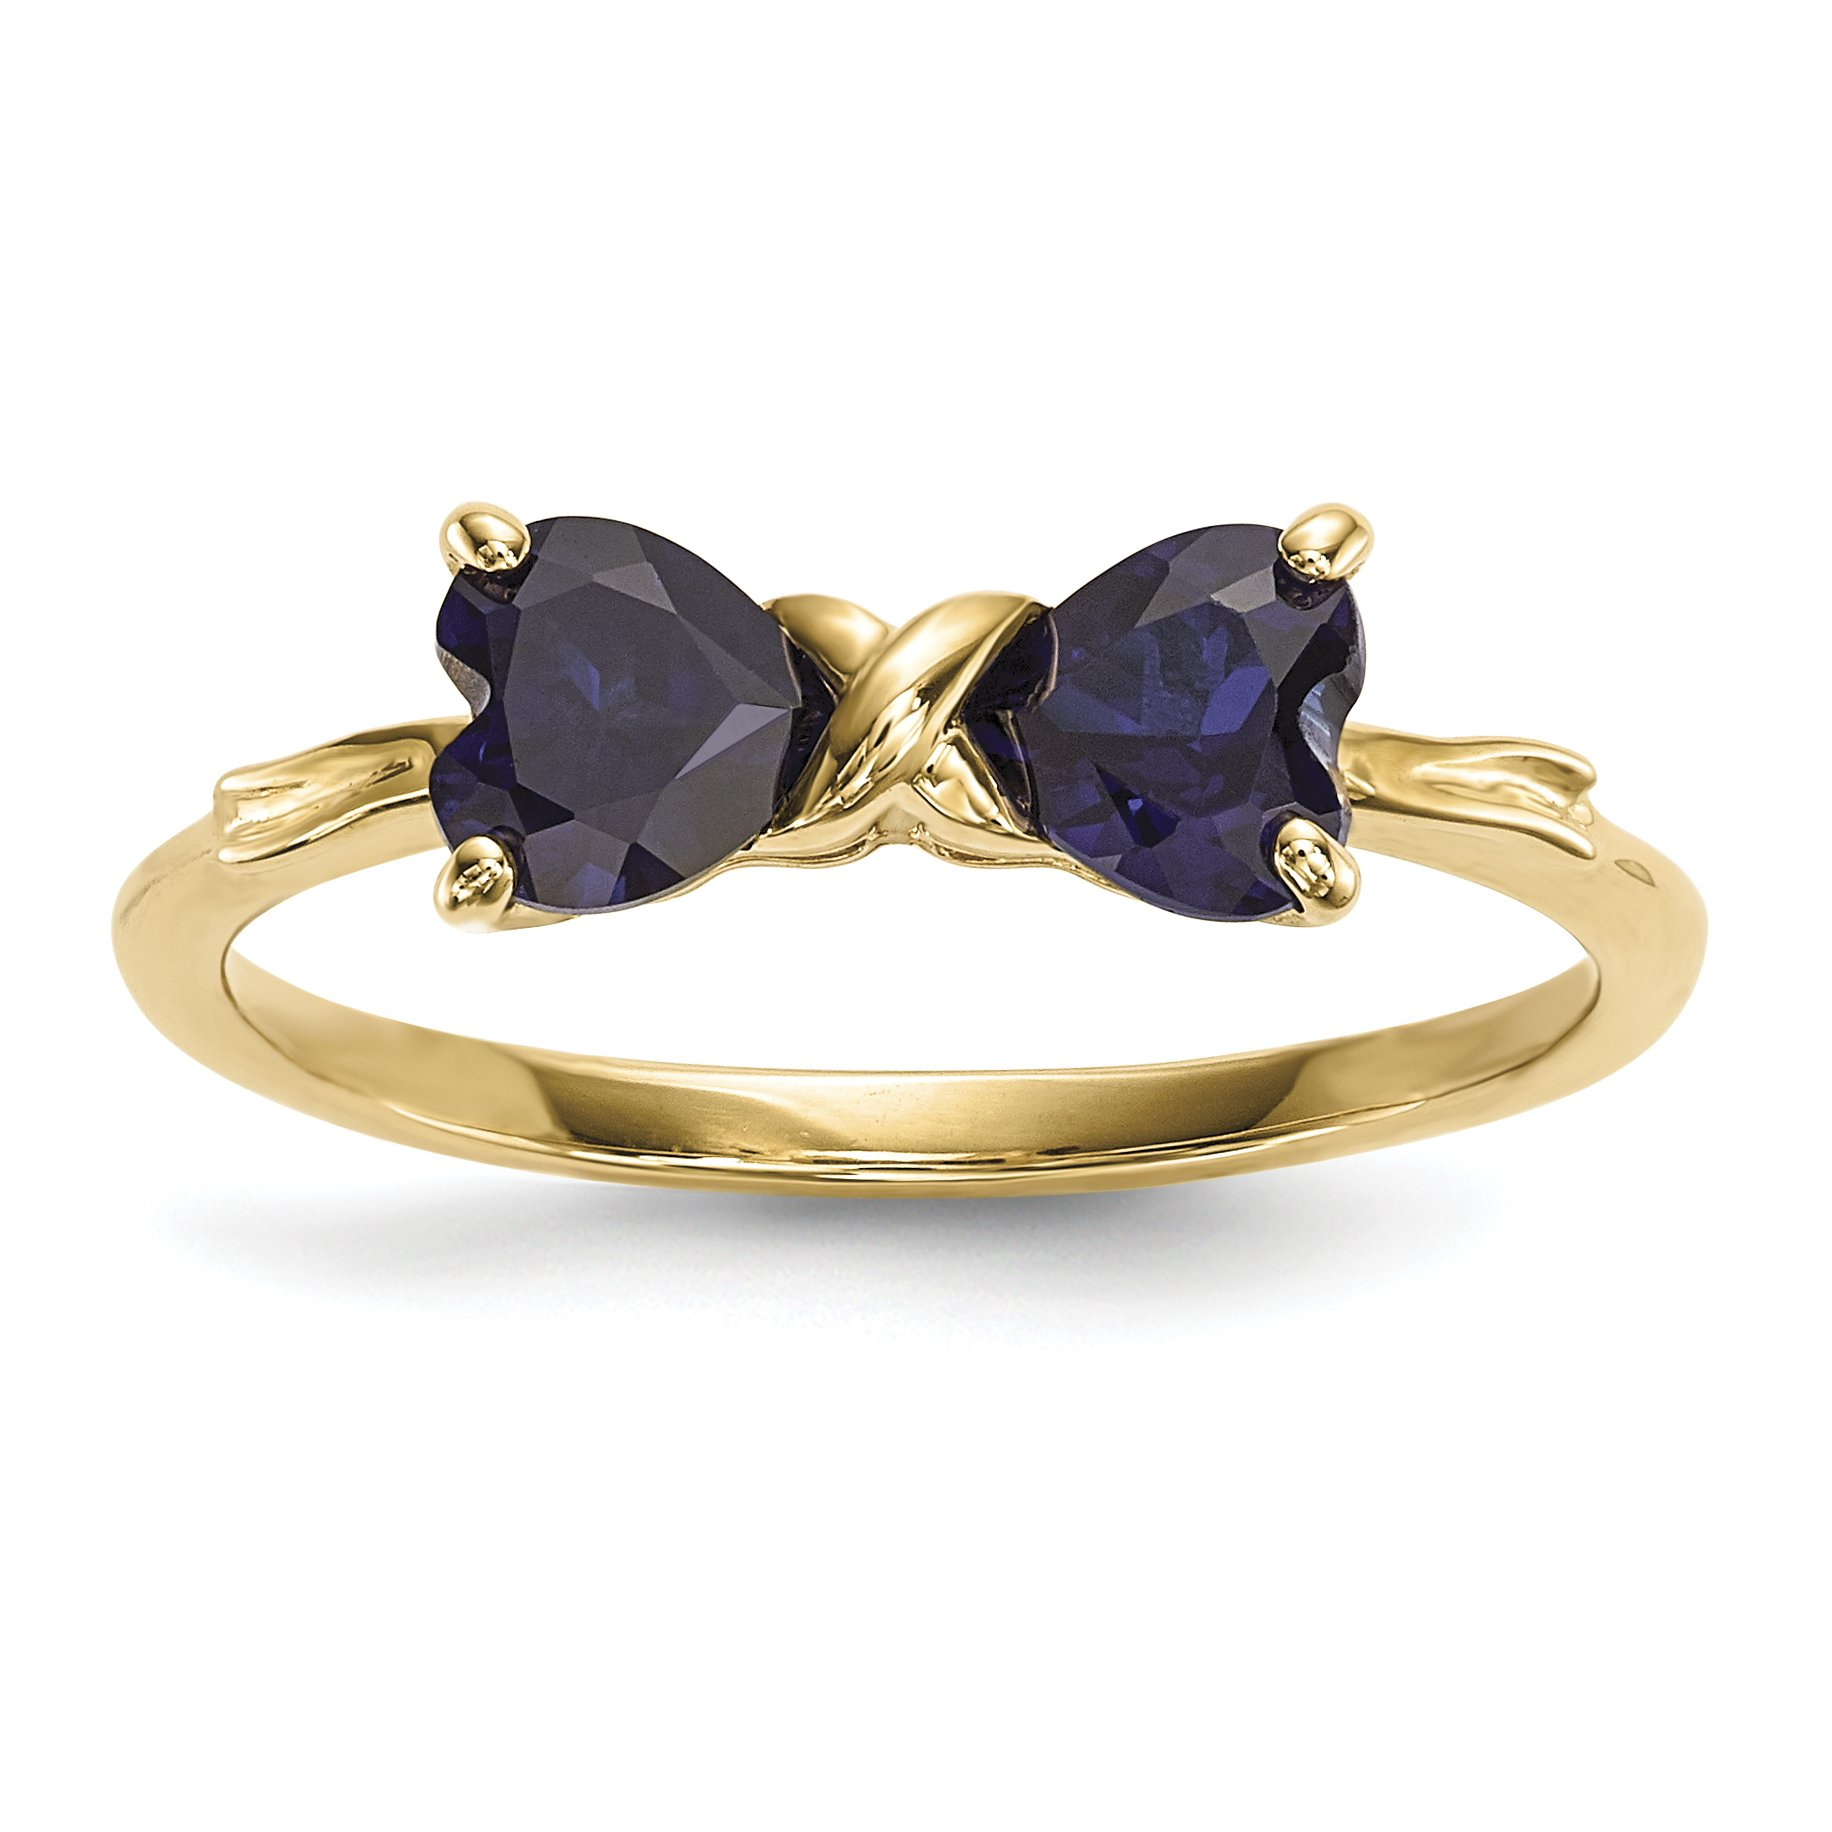 ICE CARATS 14k Yellow Gold Created Sapphire Bow Band Ring Size 7.00 Birthstone September Set Style Fine Jewelry Gift Set For Women Heart